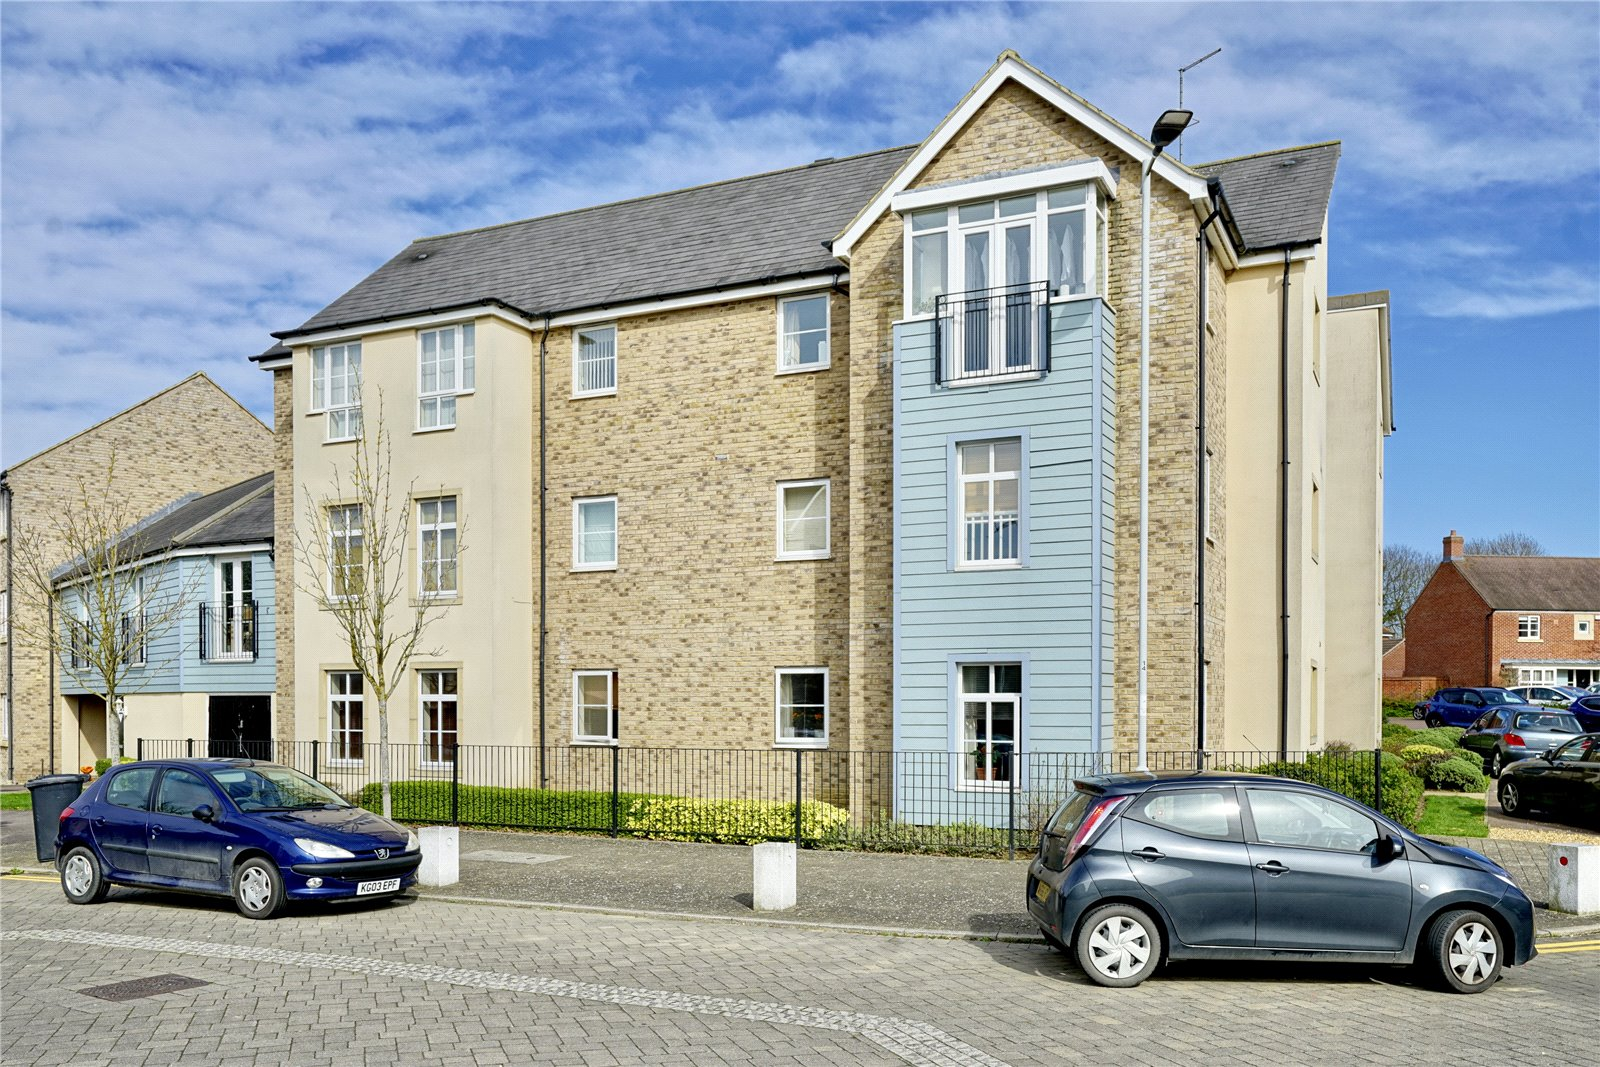 2 bed apartment for sale in St. Neots, Alsop Way, PE19 6AZ  - Property Image 1